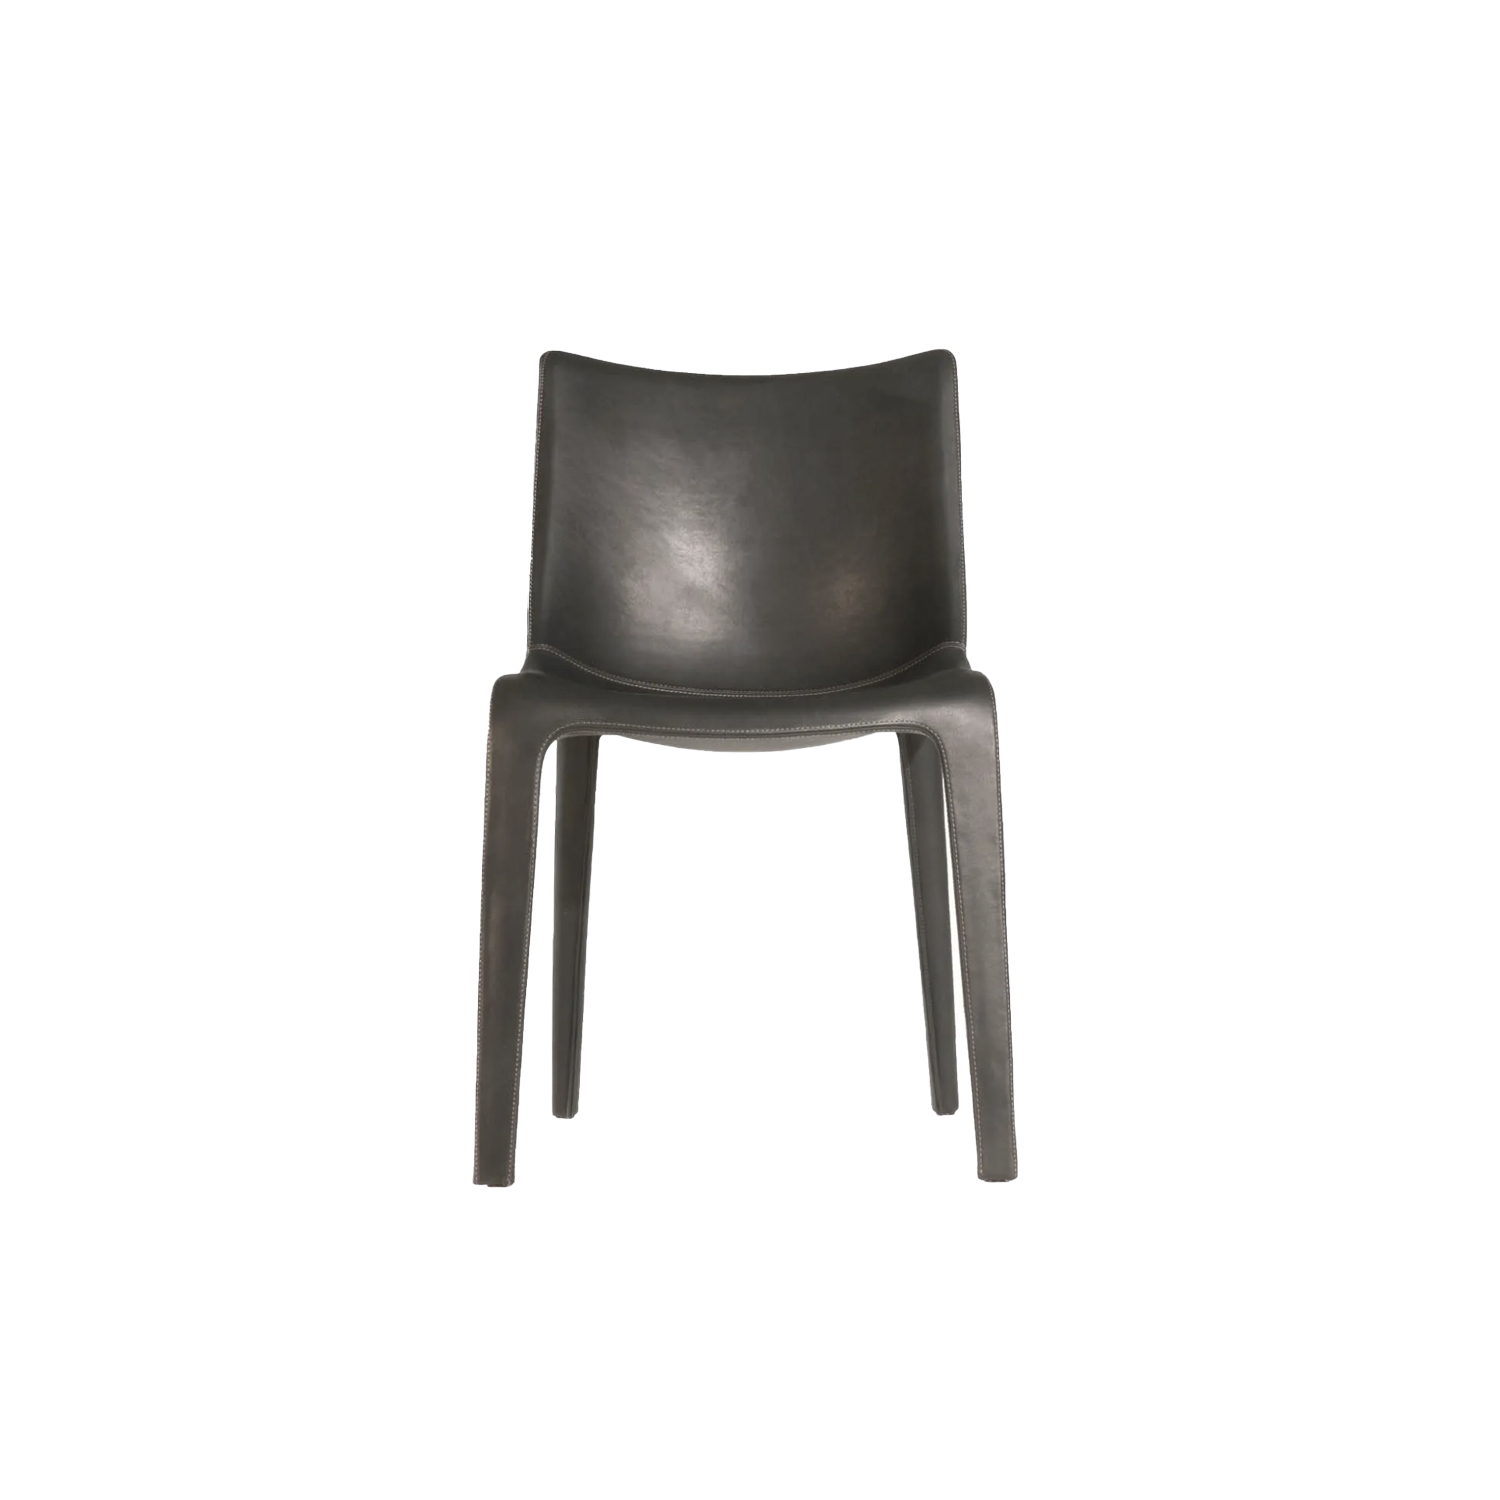 """Lou Eat Chair - """"Lou Eat is not a chair, it is an animal-like sculpture that could eat you."""" Philippe Starck. Lou Eat and Lou Think, along with Lou Read, form the Lou read family, a seating collection that features plastic sculptural shapes. Lou Eat is the easiest and most versatile item in the collection, a small armchair upholstered in leather. Conceived as a dining room seat, it is also ideal as the sole protagonist of spaces. """"Lou Eat is not a chair, it is an animal-like sculpture that could eat you."""" Philippe Starck. Lou Eat and Lou Think, along with Lou Read, form the Lou read family, a seating collection that features plastic sculptural shapes. Lou Eat is the easiest and most versatile item in the collection, a small armchair upholstered in leather. Conceived as a dining room seat, it is also ideal as the sole protagonist of spaces. """"Lou Eat is not a chair, it is an animal-like sculpture that could eat you."""" Philippe Starck. Lou Eat and Lou Think, along with Lou Read, form the Lou read family, a seating collection that features plastic sculptural shapes. Lou Eat is the easiest and most versatile item in the collection, a small armchair upholstered in leather. Conceived as a dining room seat, it is also ideal as the sole protagonist of spaces. """"Lou Eat is not a chair, it is an animal-like sculpture that could eat you."""" Philippe Starck. Lou Eat and Lou Think, along with Lou Read, form the Lou read family, a seating collection that features plastic sculptural shapes. Lou Eat is the easiest and most versatile item in the collection, a small armchair upholstered in leather. Conceived as a dining room seat, it is also ideal as the sole protagonist of spaces. 